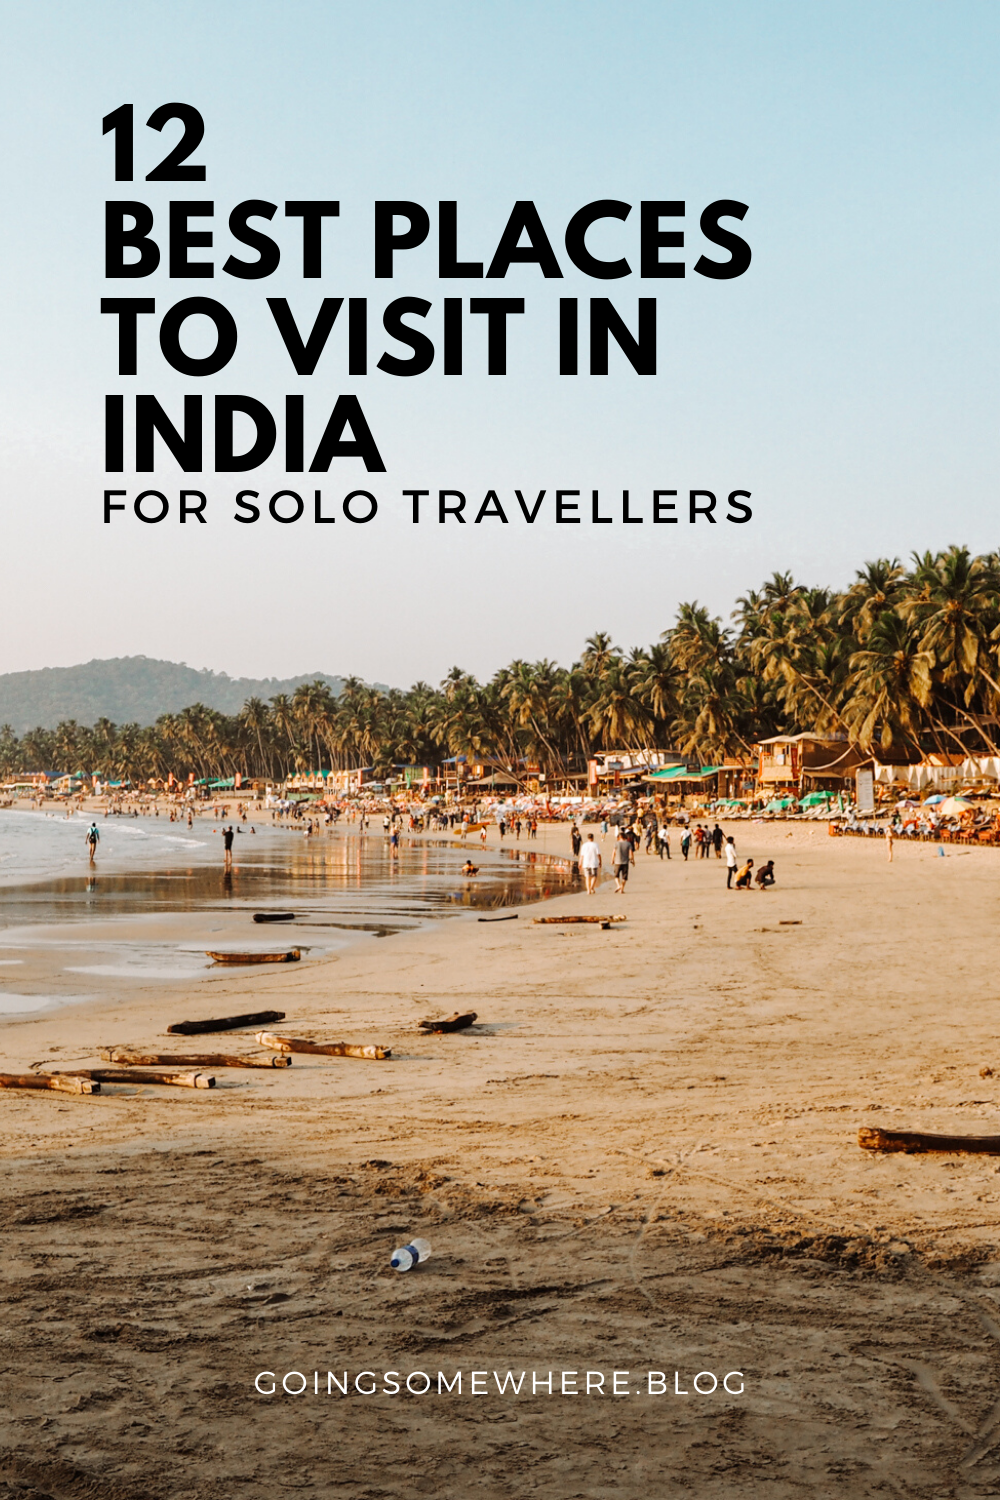 12 Best Places To Visit In India For Solo Travellers In 2020 Solo Travel Places To Visit Cool Places To Visit